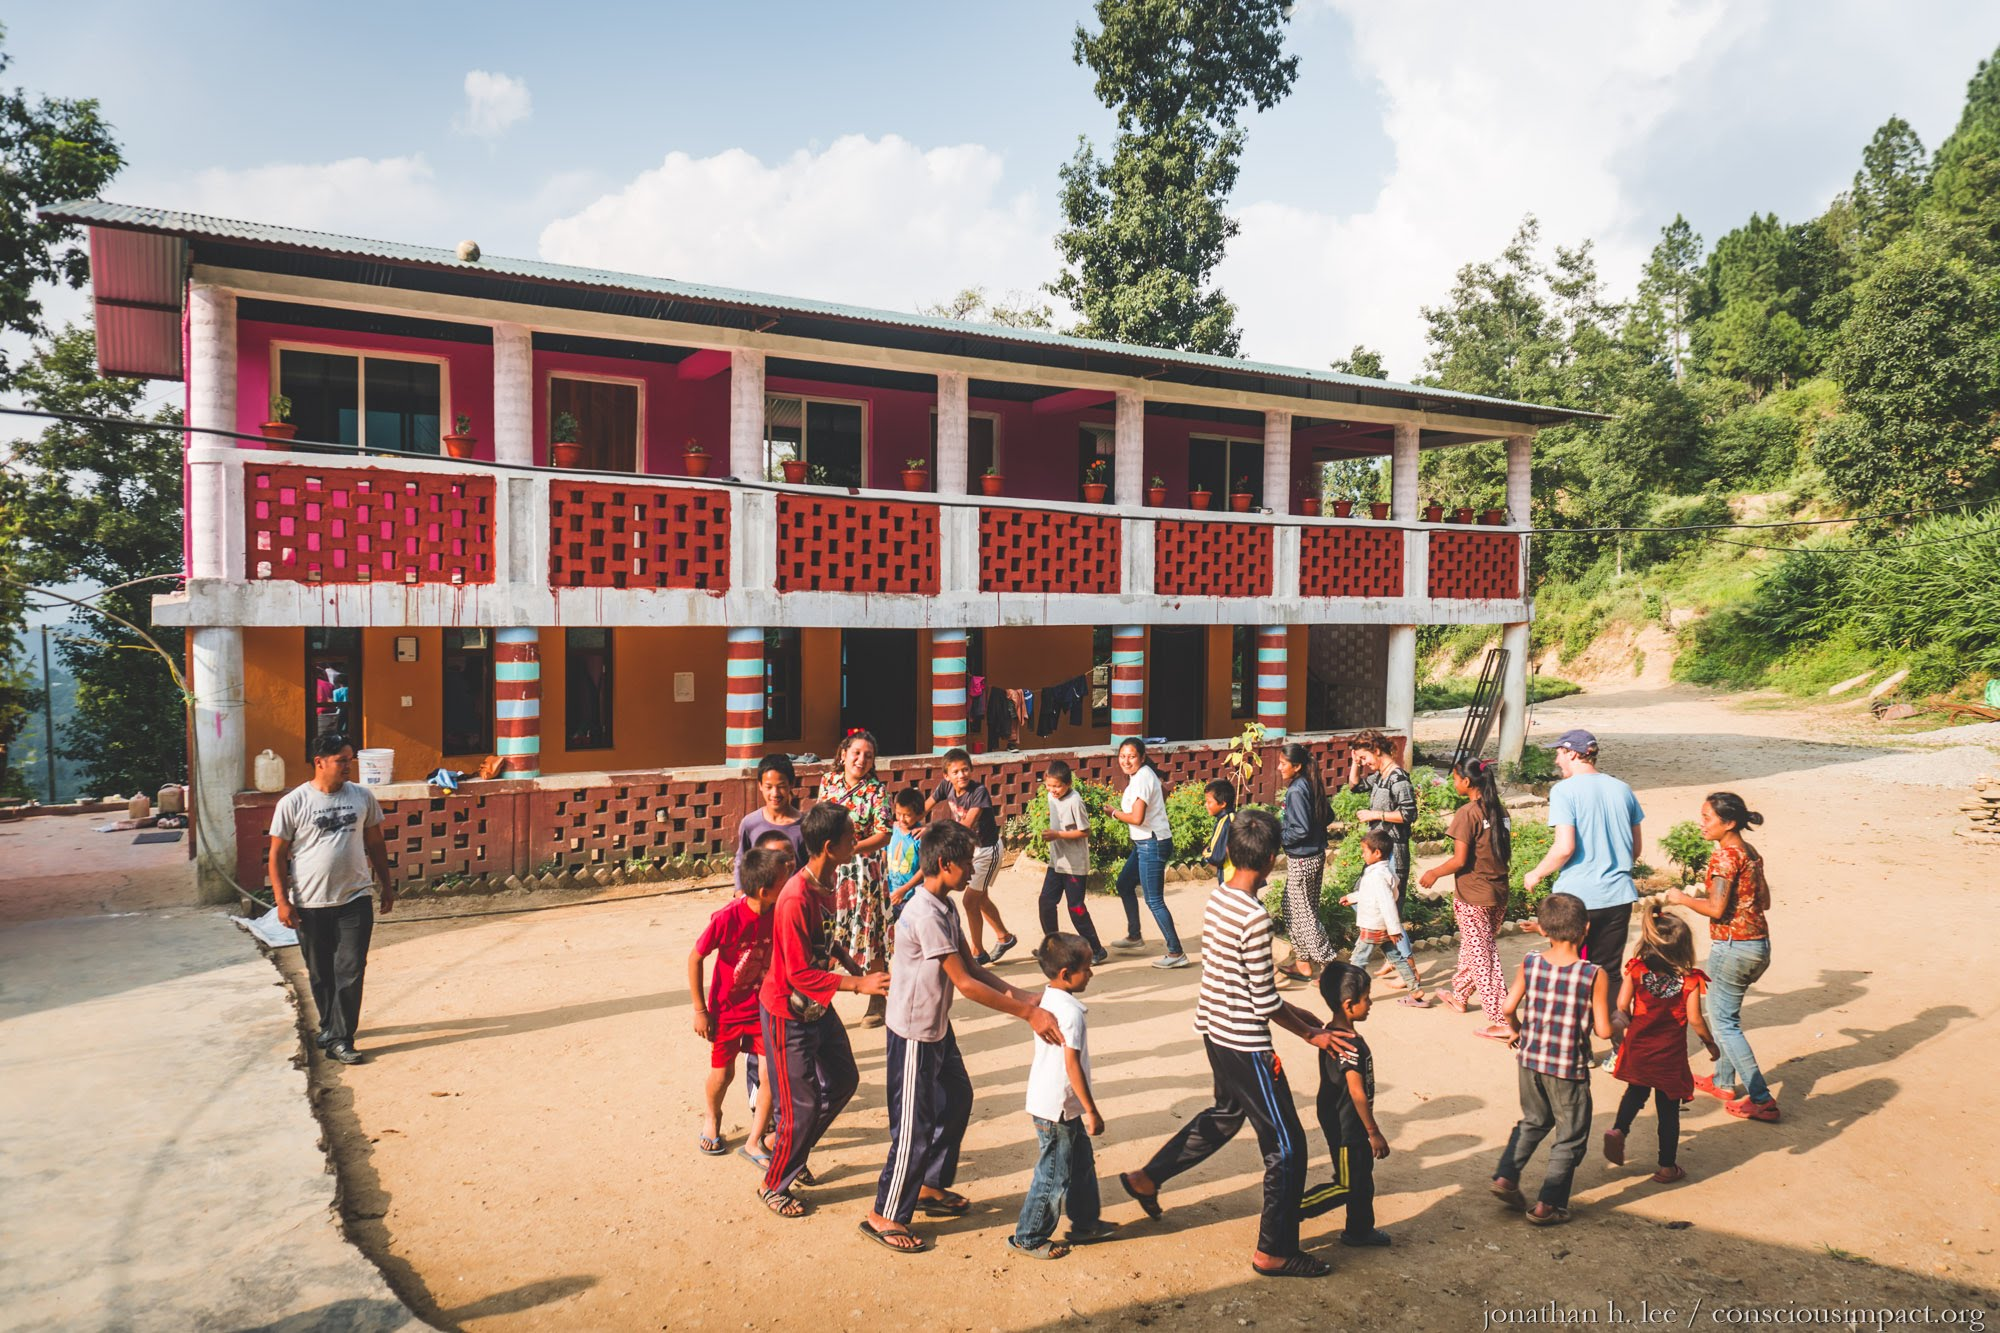 Spending time at the Mother Sister Nepal orphanage. Photo by Jonathan H. Lee